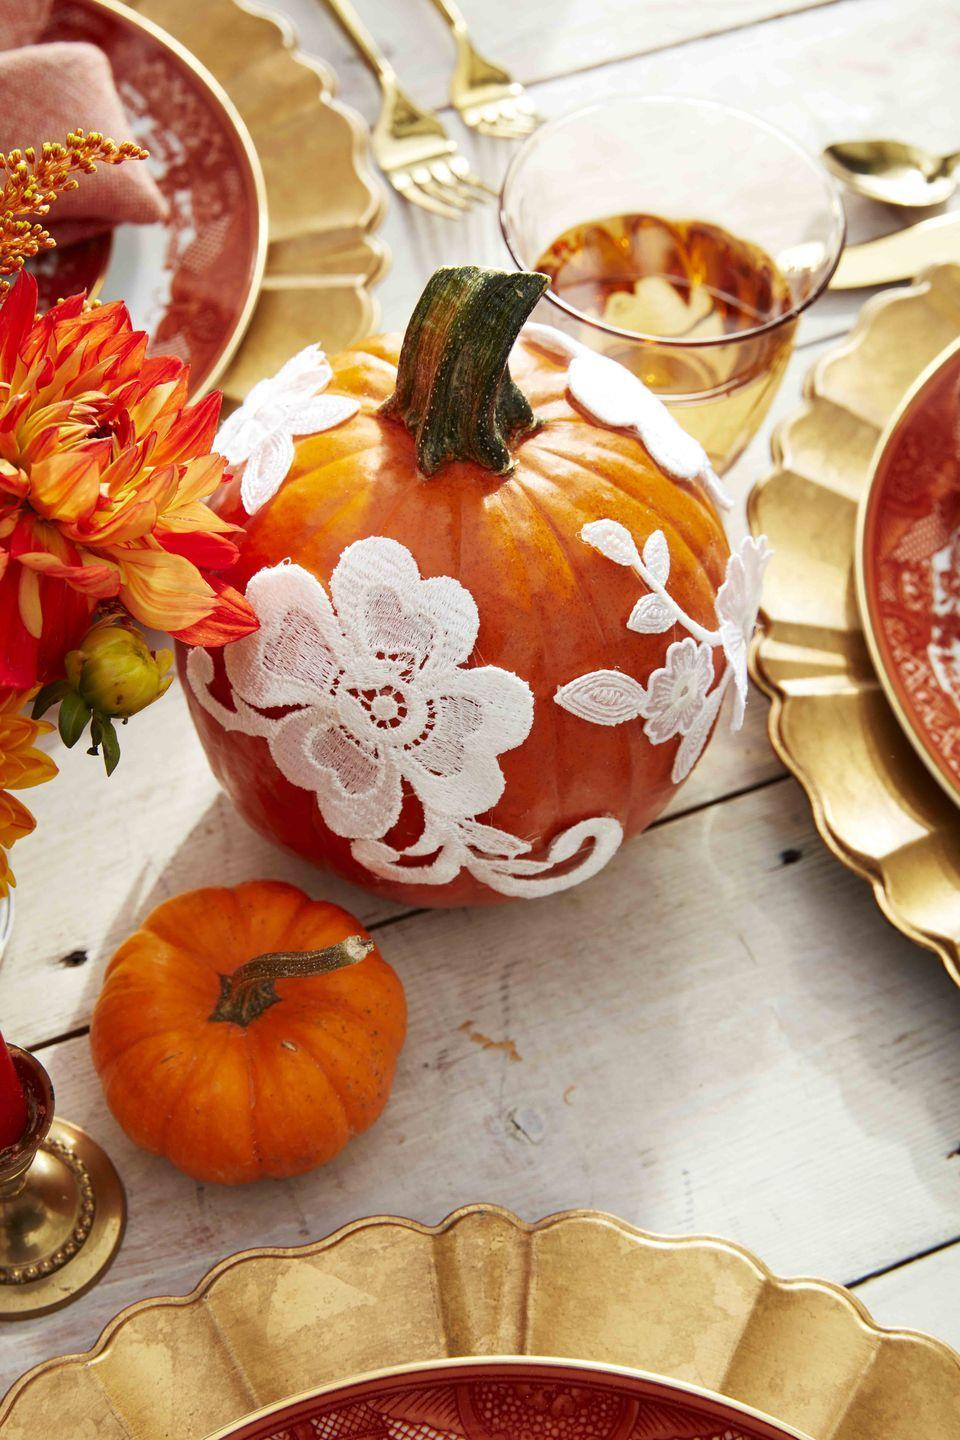 <p>This pretty pumpkin will look right at home on your holiday table or lining a kitchen shelf.<strong><br></strong></p><p><strong>Make the pumpkin:</strong> Separate sections of lace trim or use flower appliqués and attach to pumpkins with hot-glue. </p>